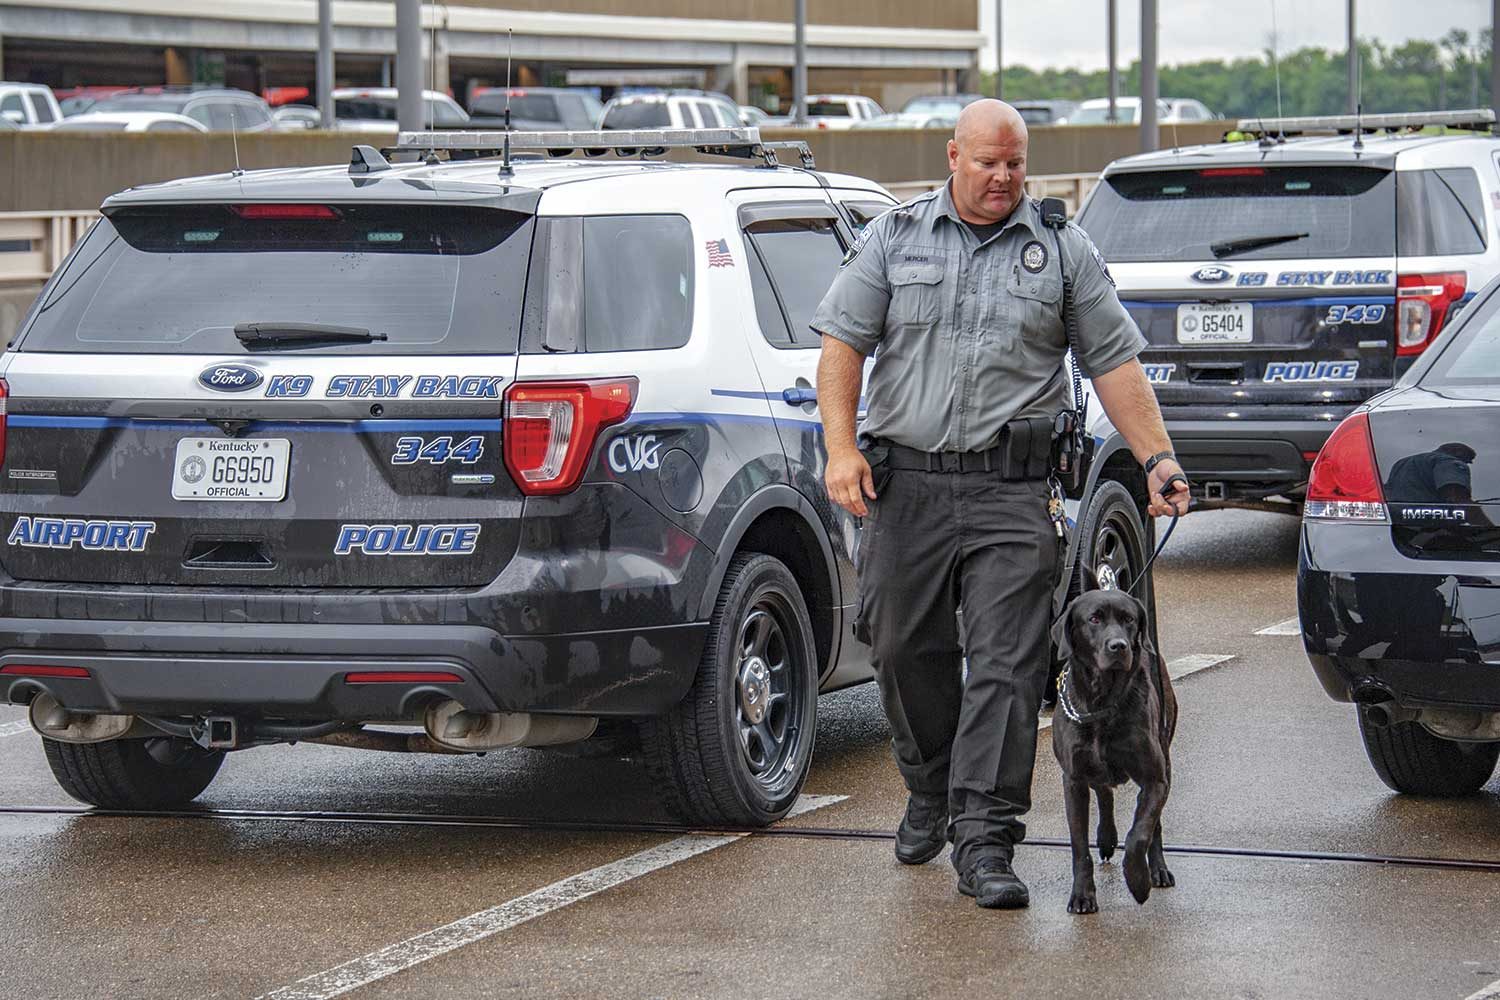 Cincinnati-Northern Kentucky Airport Police Officer Matt Mercer and K9 Jet prepare to go inside the main terminal for patrol. (Photo by Jim Robertson)